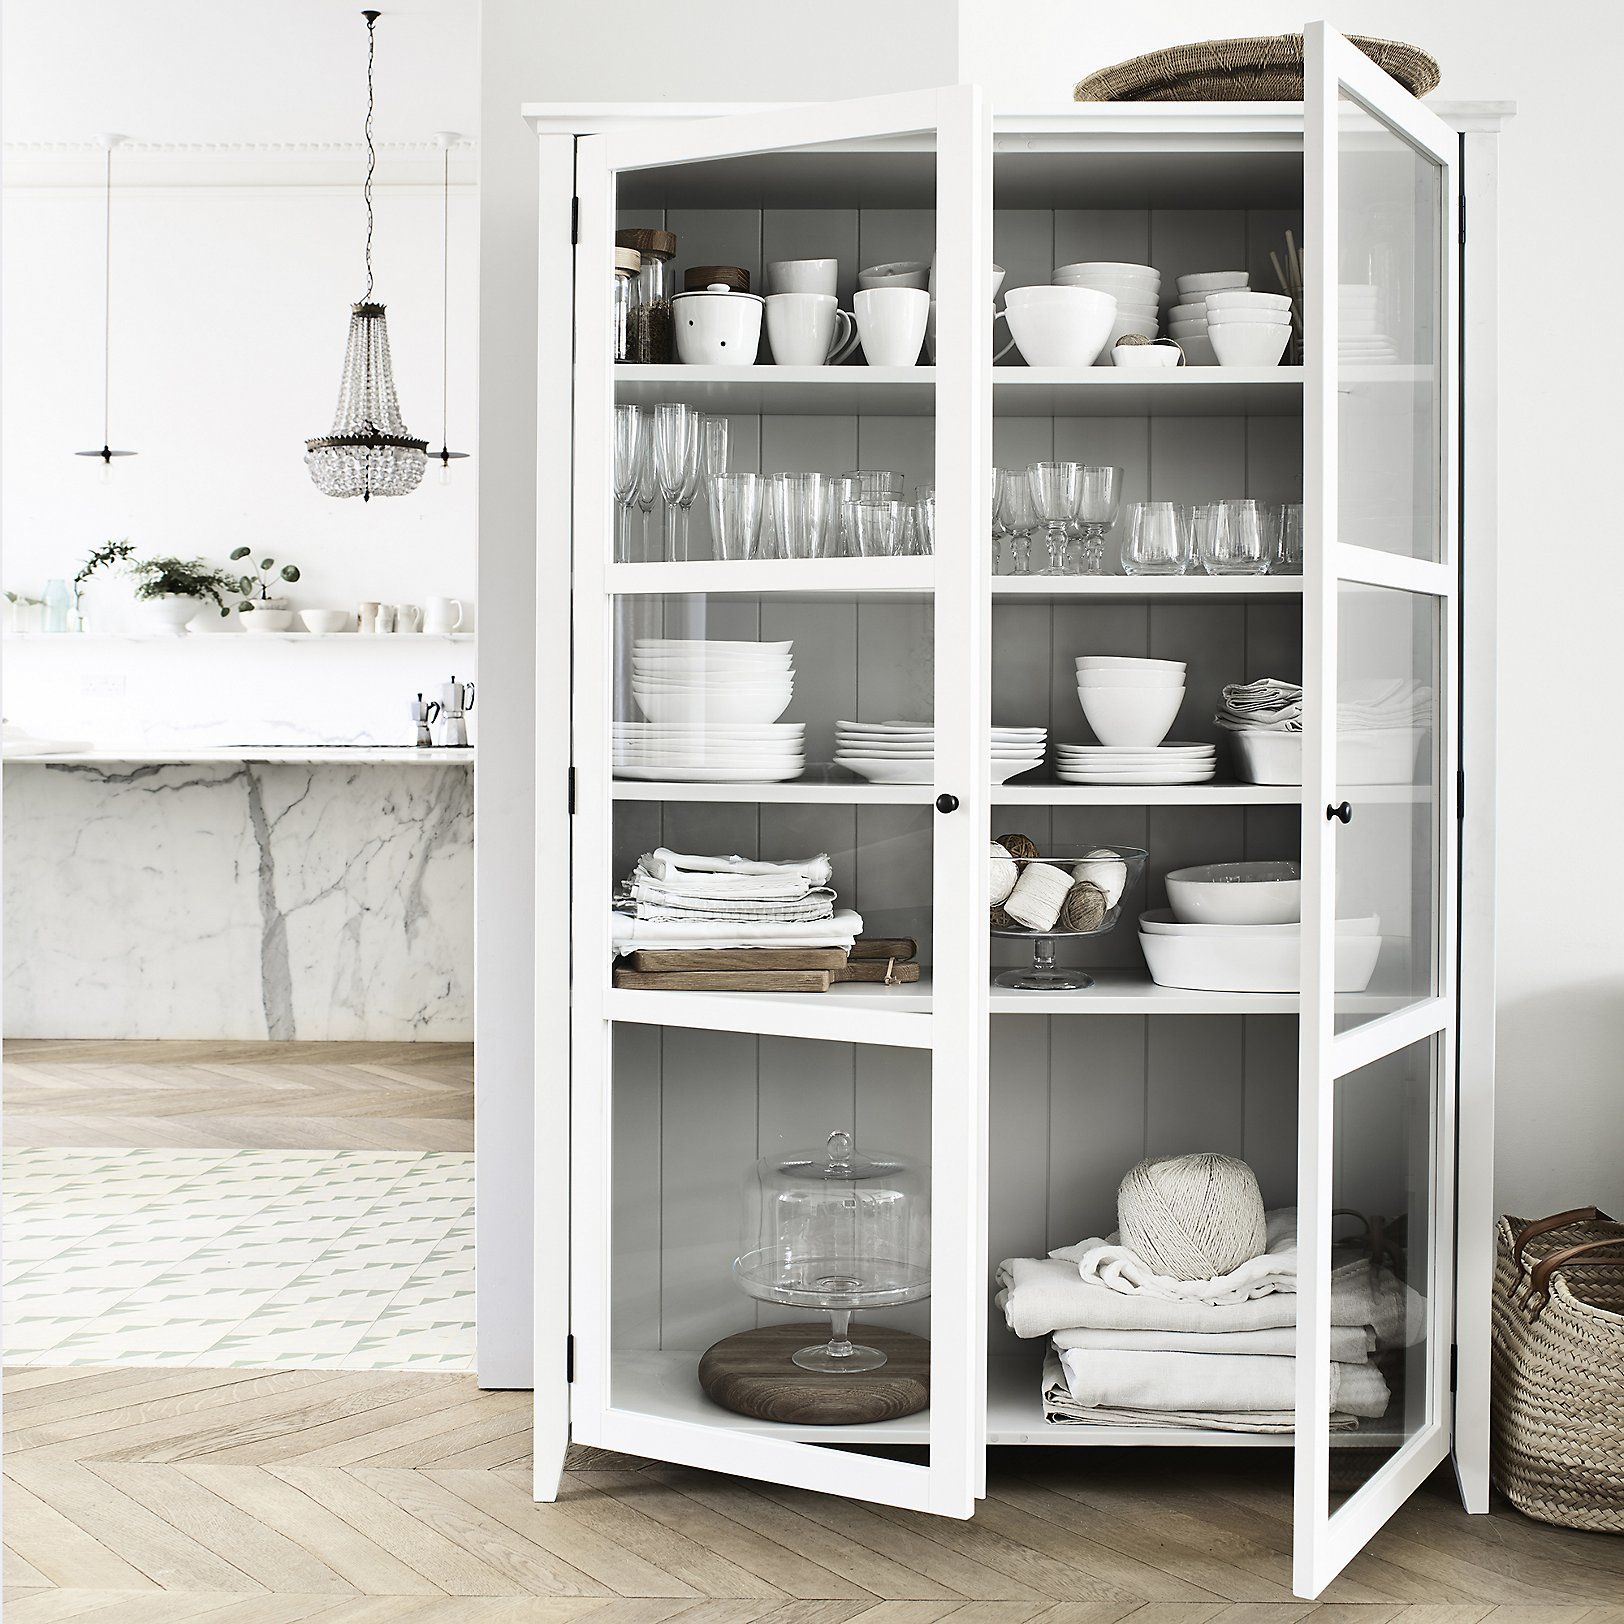 Delicieux Glass Display Cabinet | New In | Furniture | Home | The White Company UK